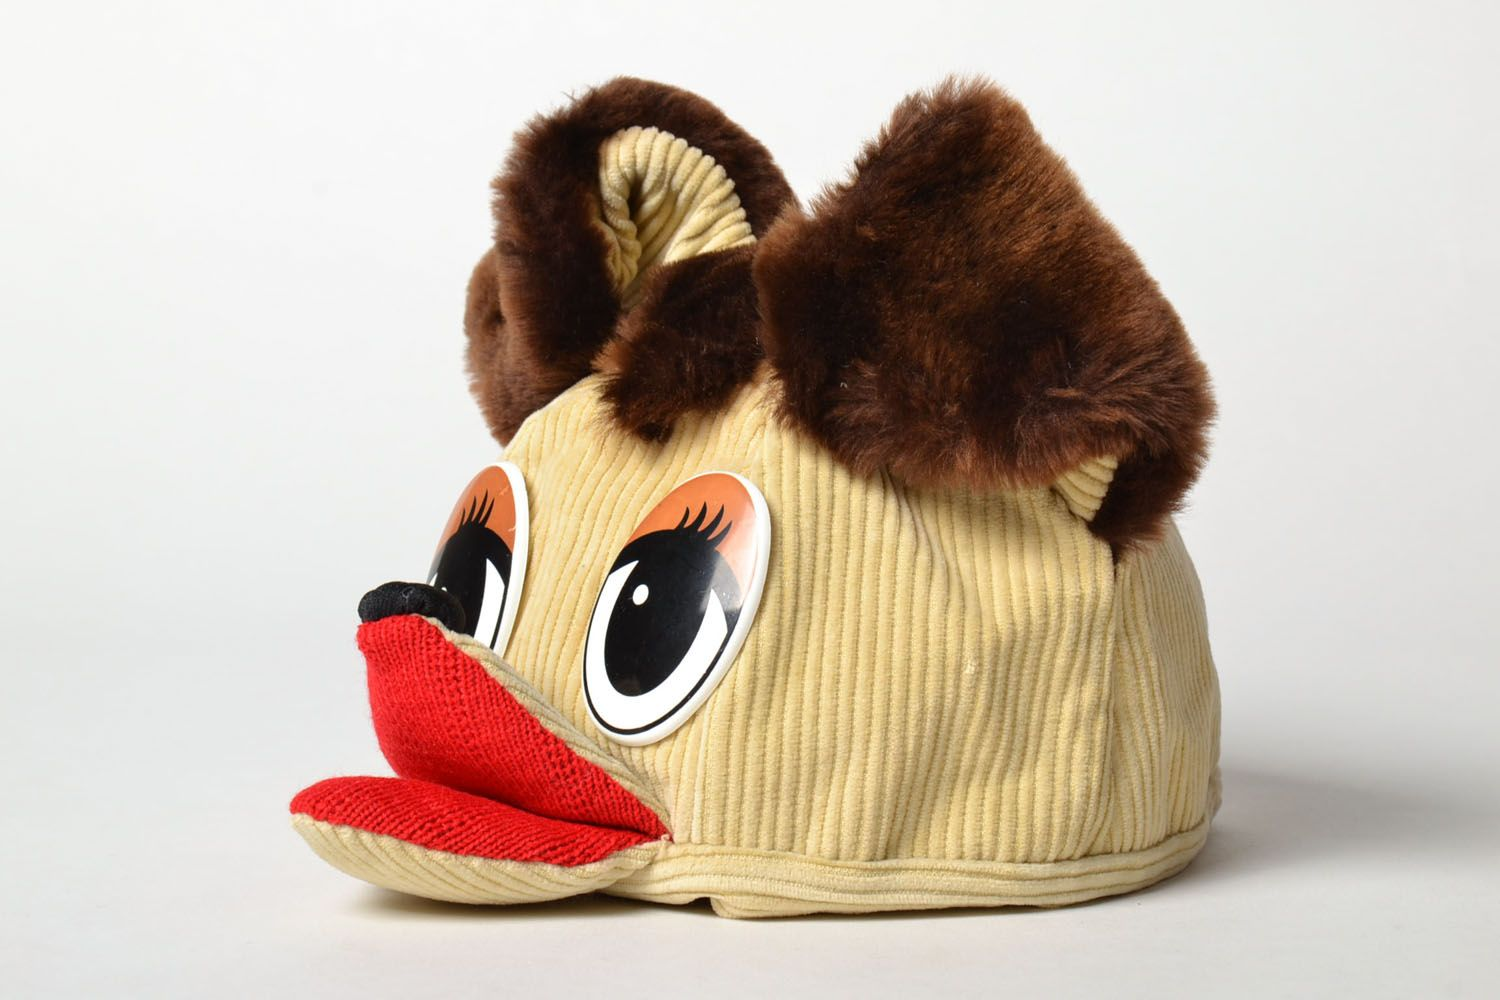 attire Children's carnival hat Dog - MADEheart.com